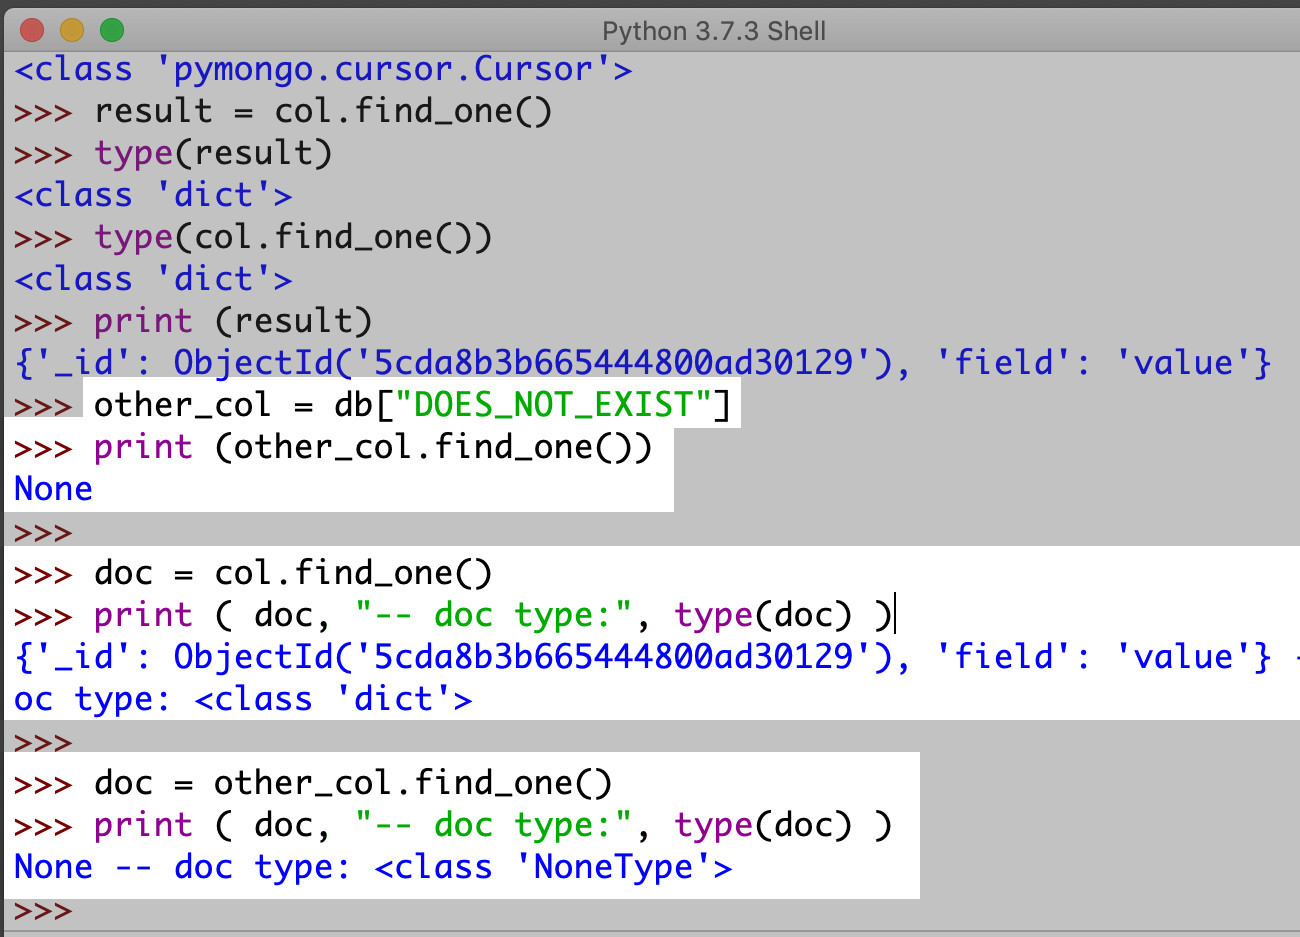 Screenshot of Python IDLE making the find_one() API call to a MongoDB collection